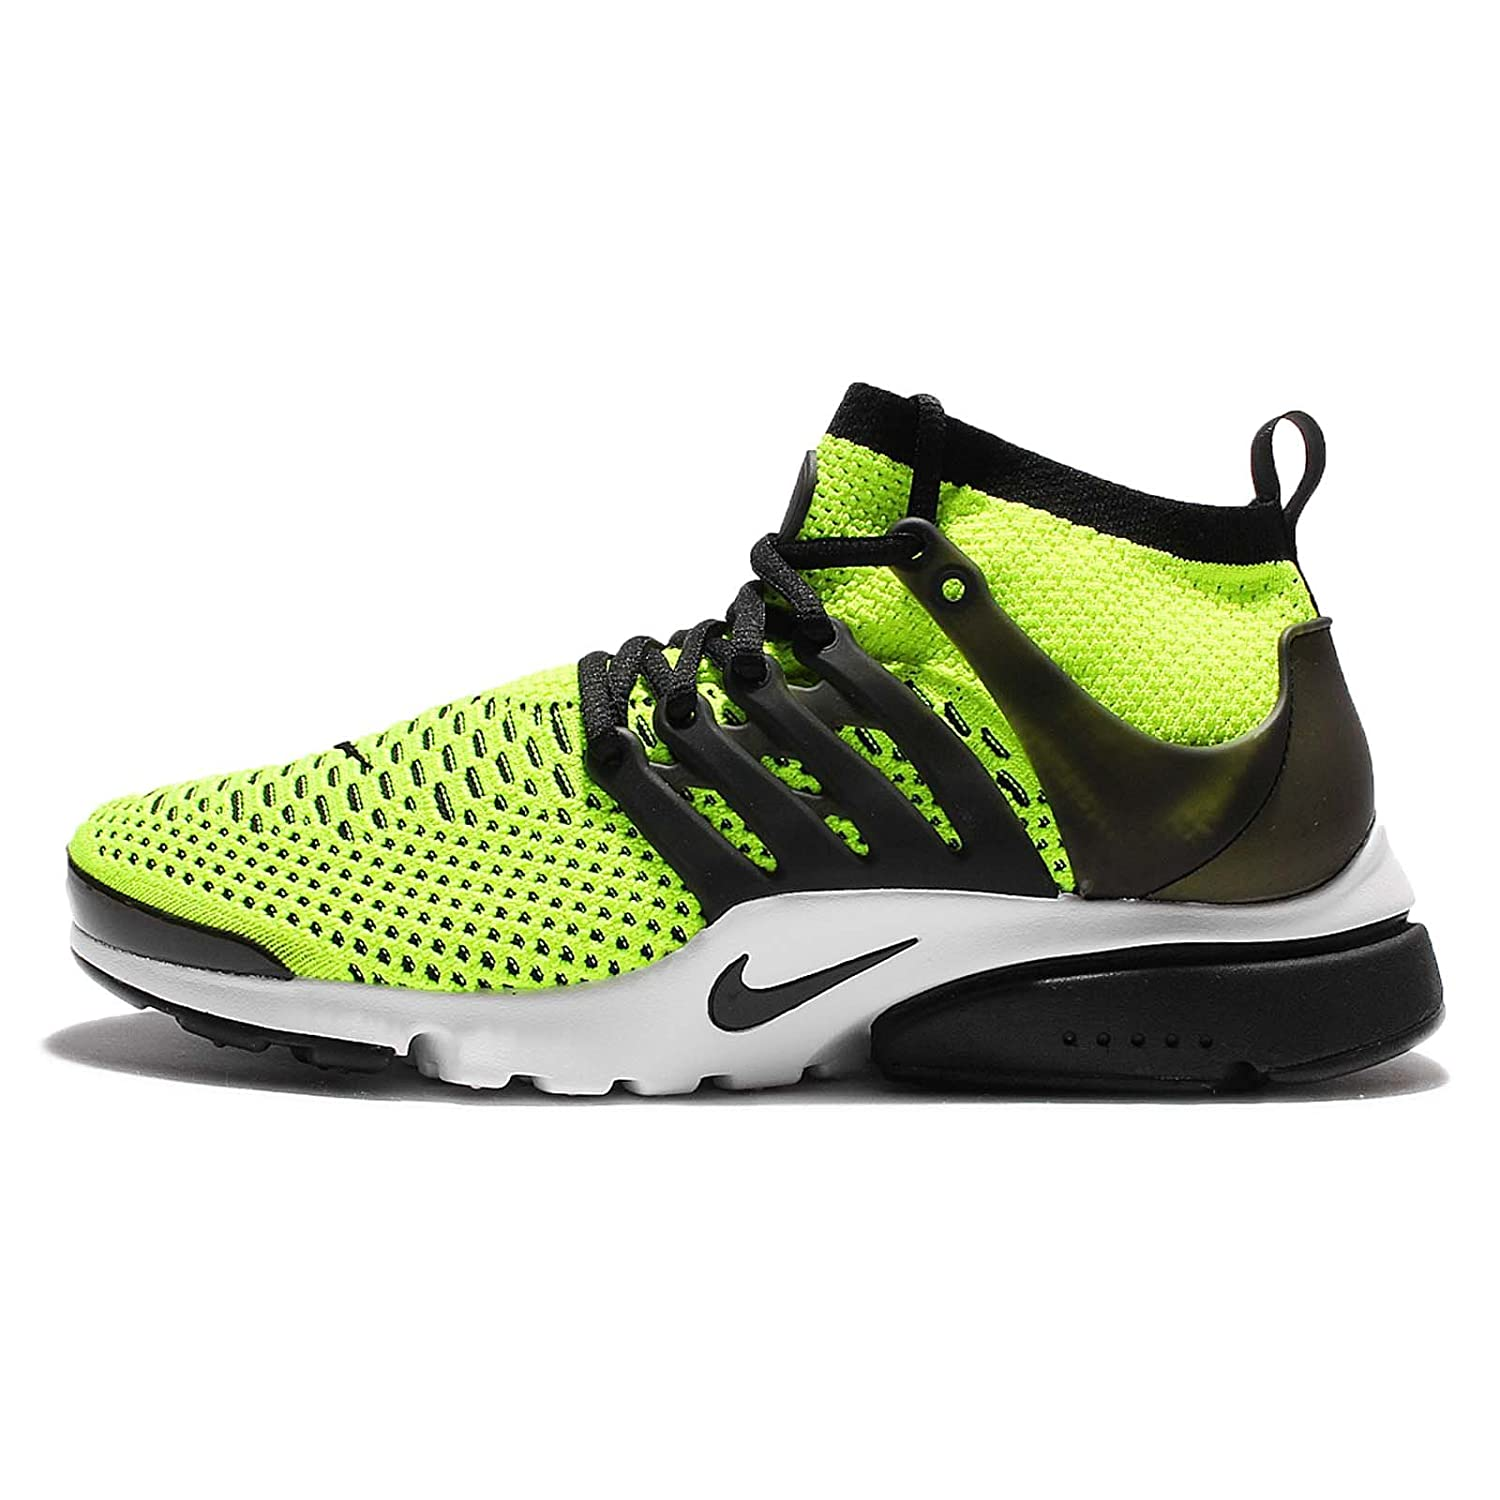 6d25d23f00937 Amazon.com  Nike Air Presto Ultra Flyknit 835570-701 Volt White Black Men s  Running Shoes (Size 8)  Sports   Outdoors